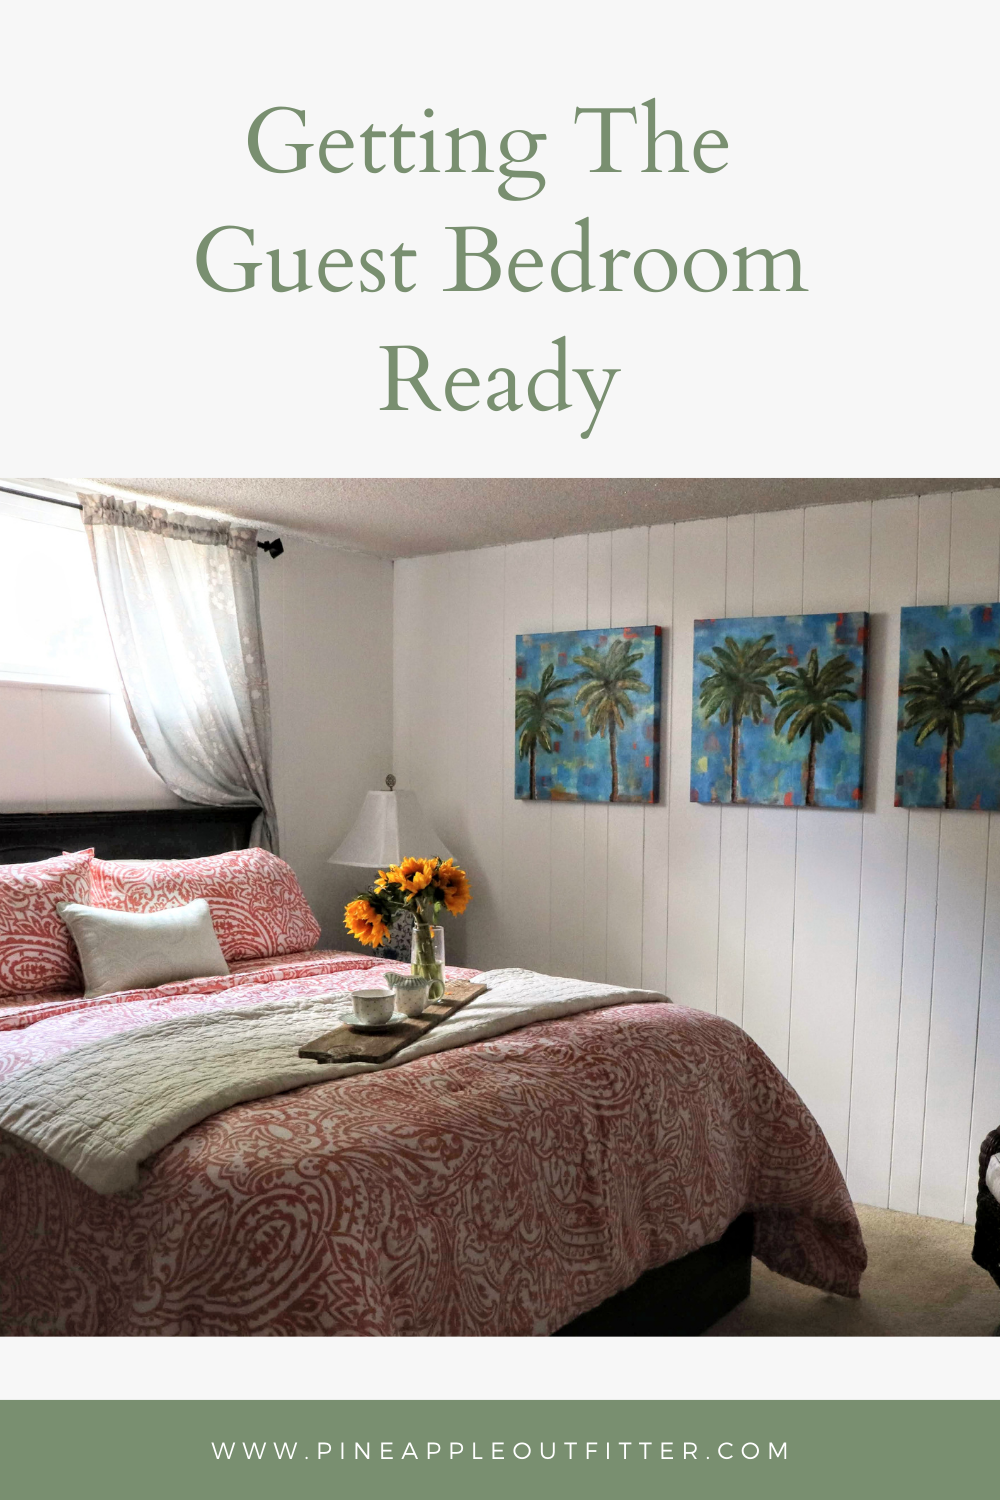 Getting the Guest Bedroom Ready